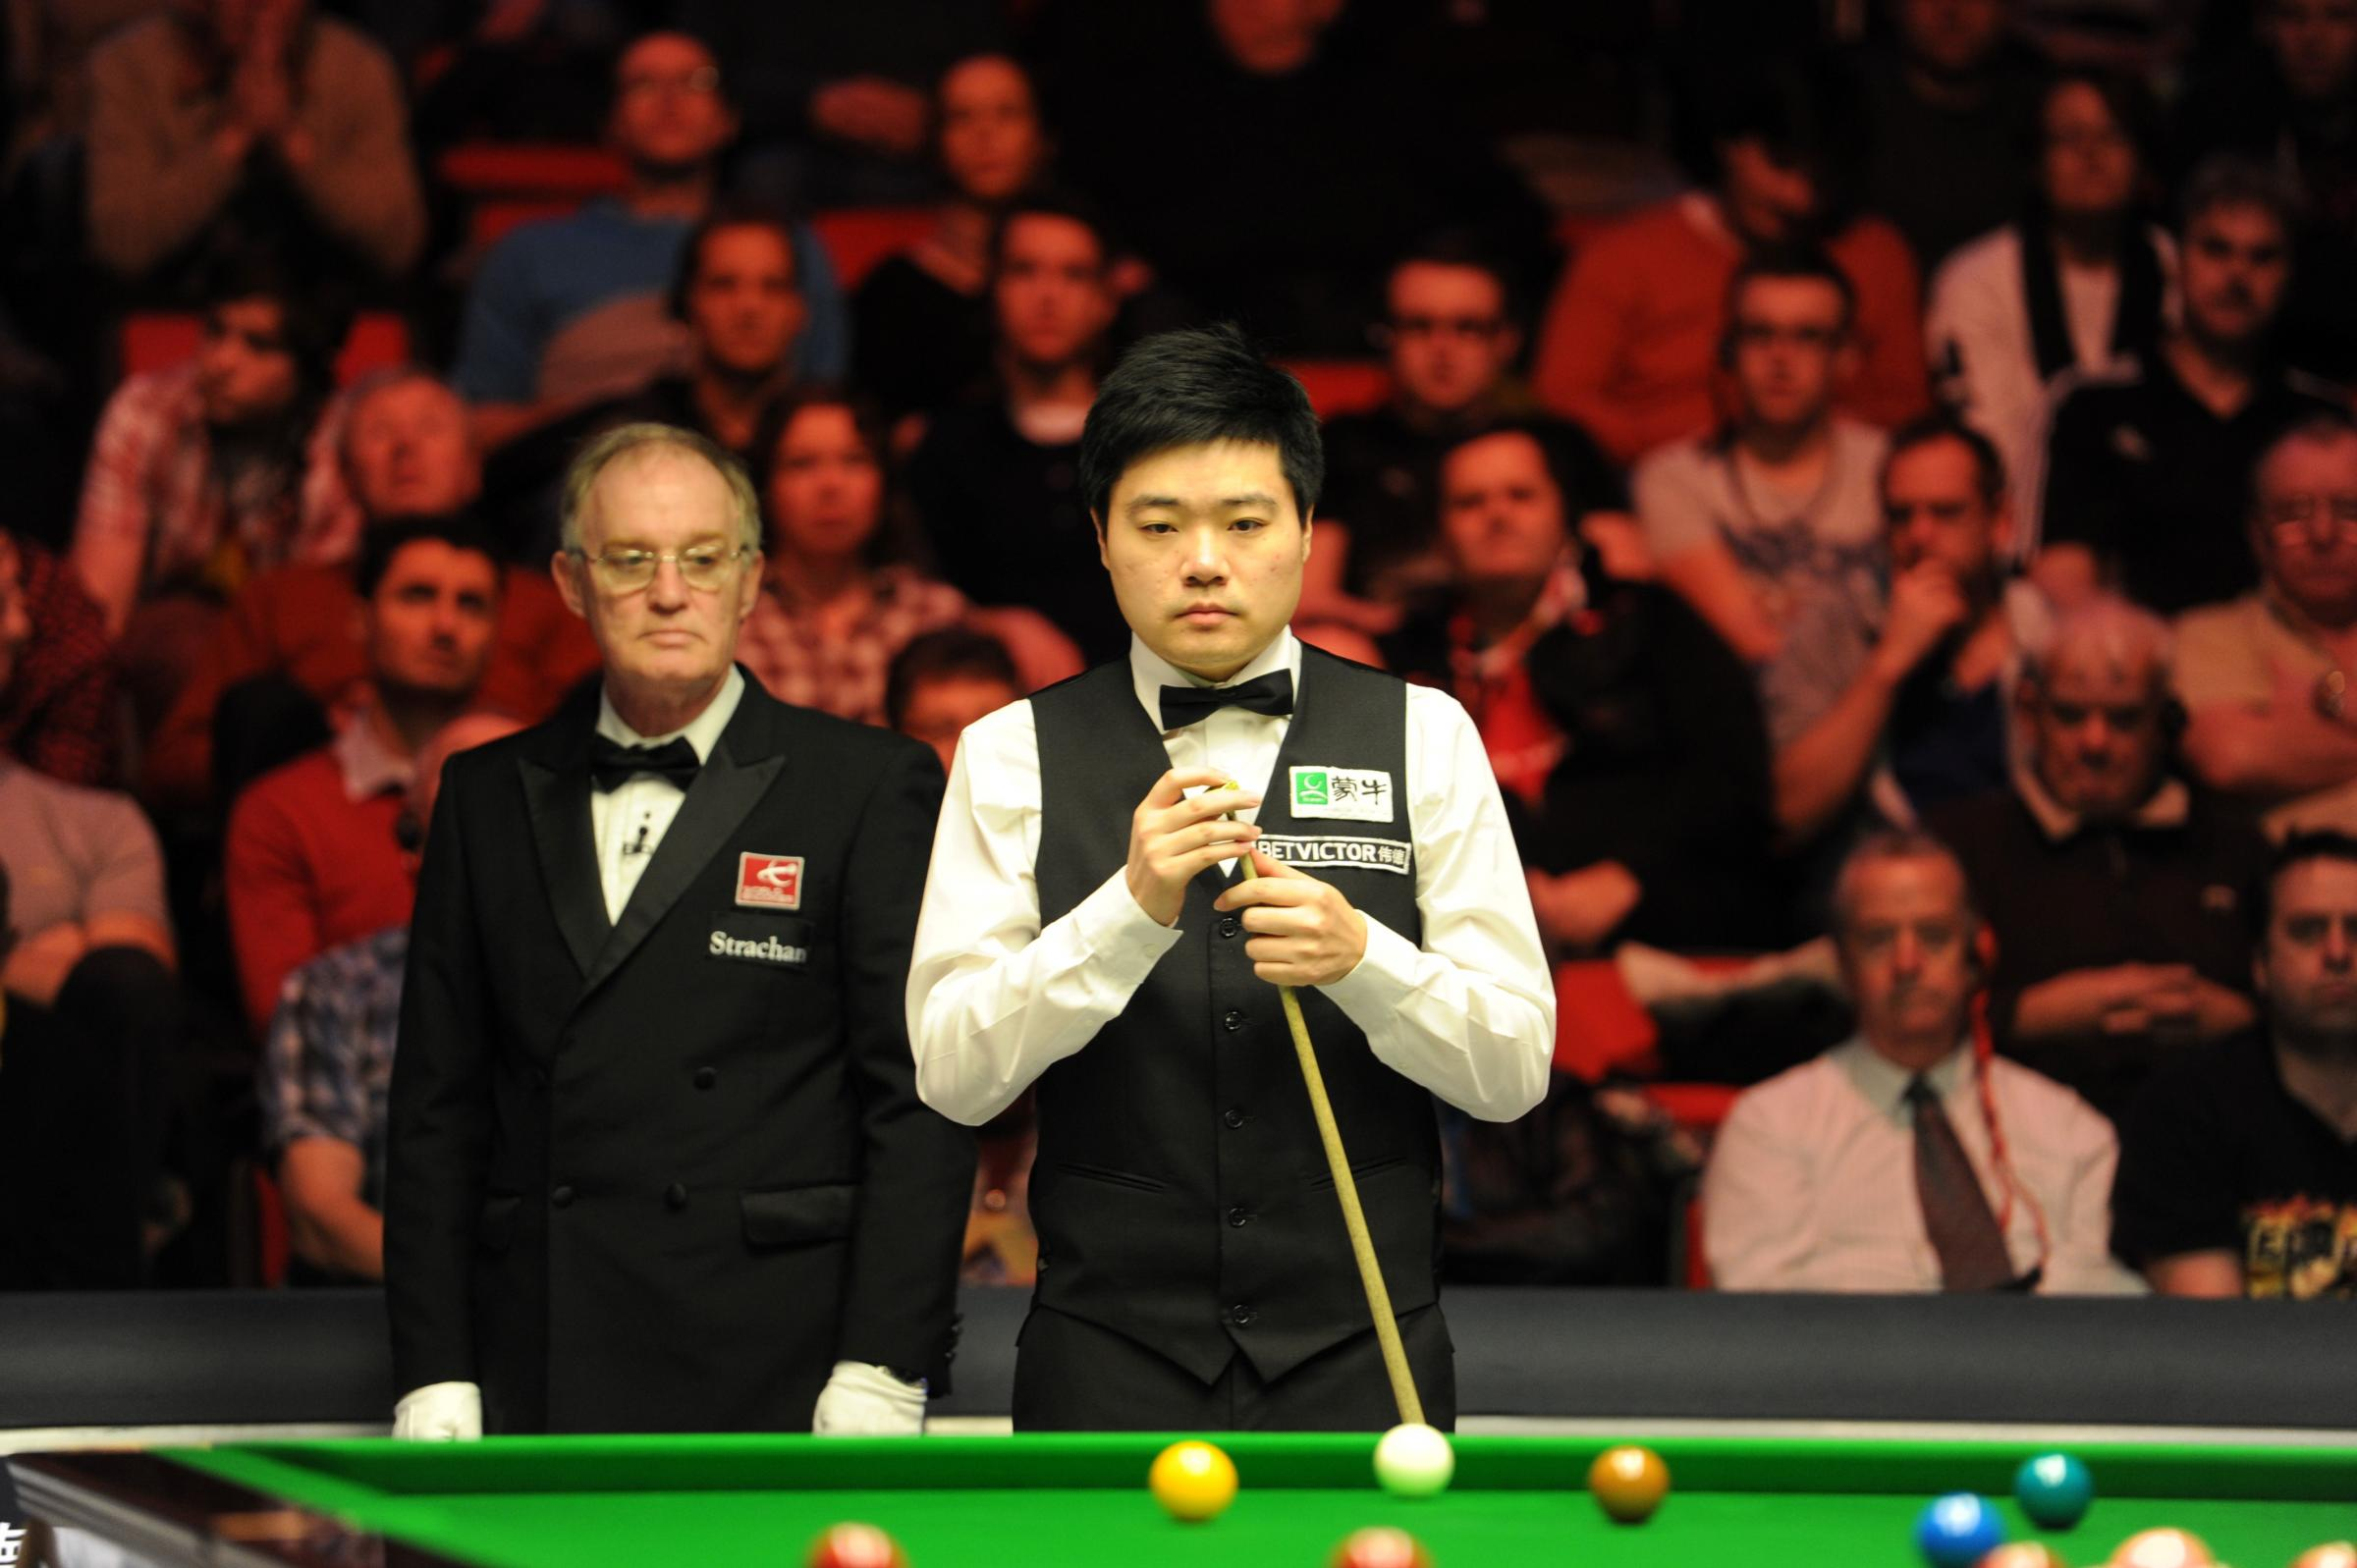 FINAL PLACE: China's Ding Junhui is on course for another tournament win in Newport